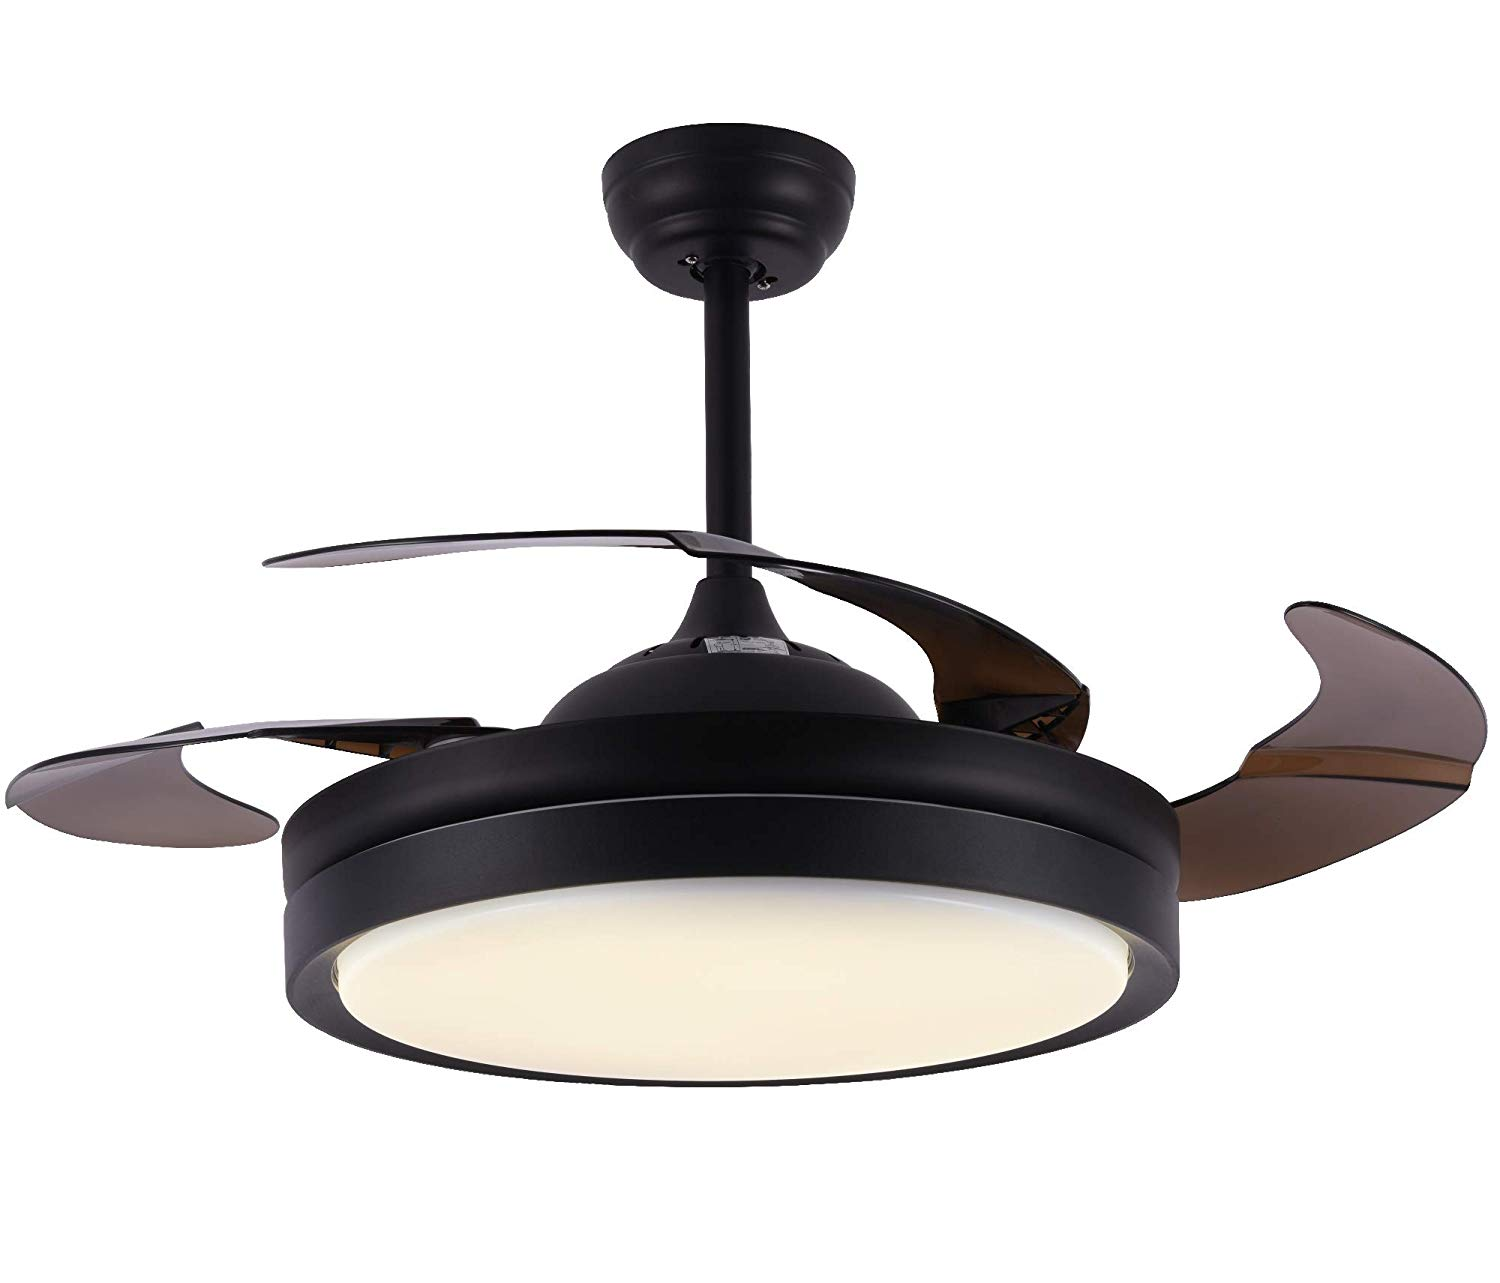 42 black ceiling fan get quotations bella depot black small ceiling fan with lights led remote control 42 cheap 42 fan find deals on line